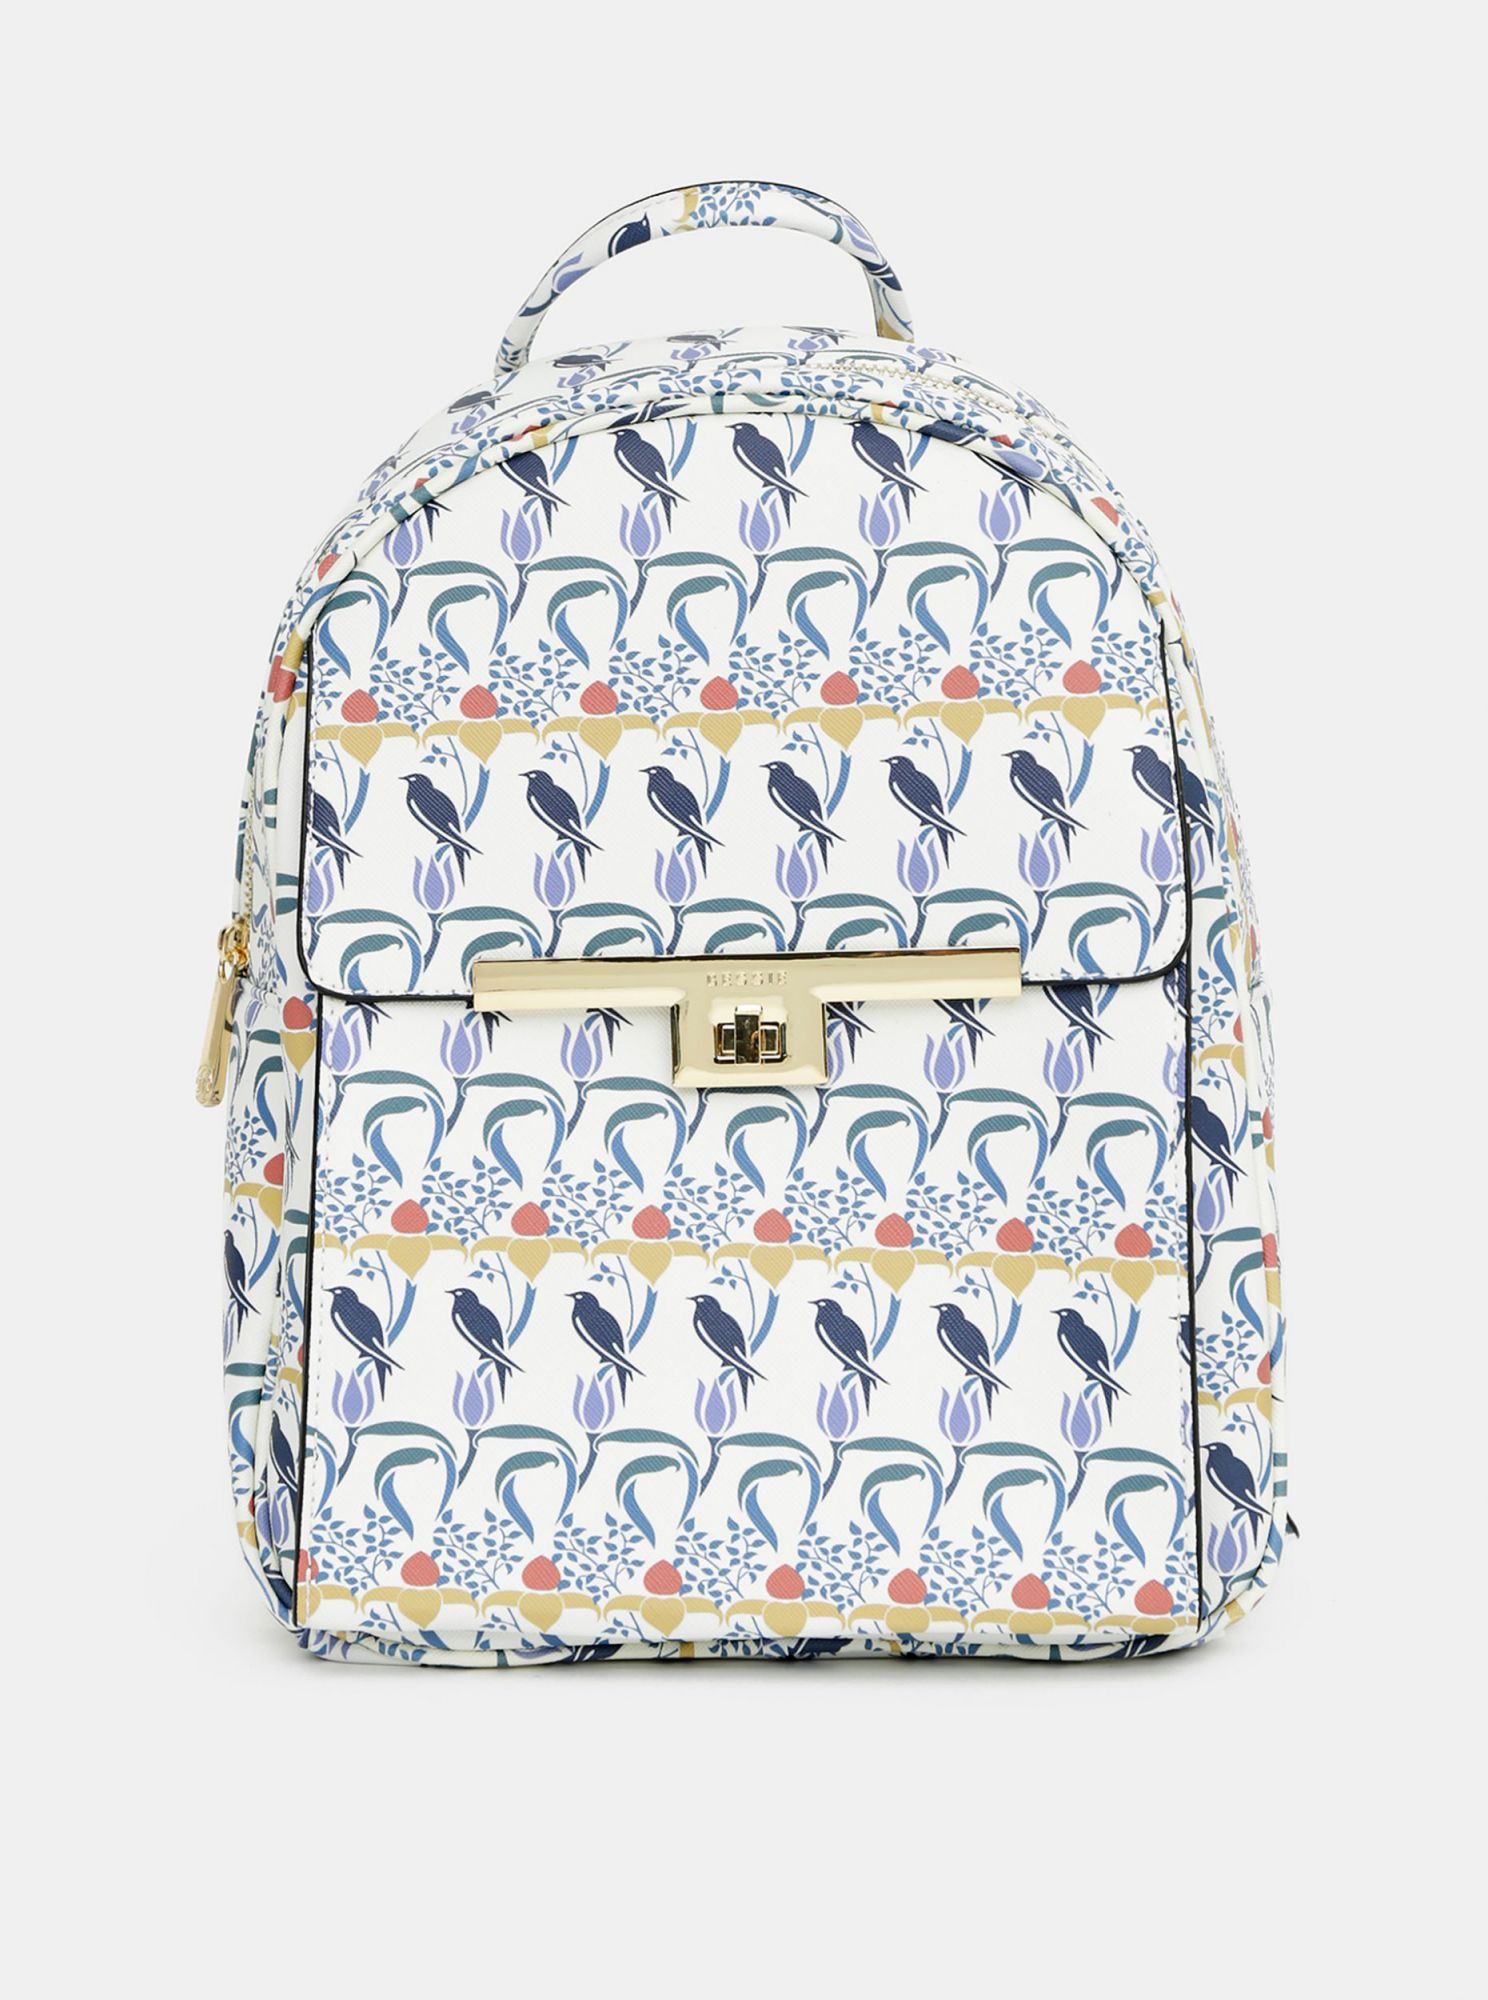 Blue and white patterned backpack Bessie London